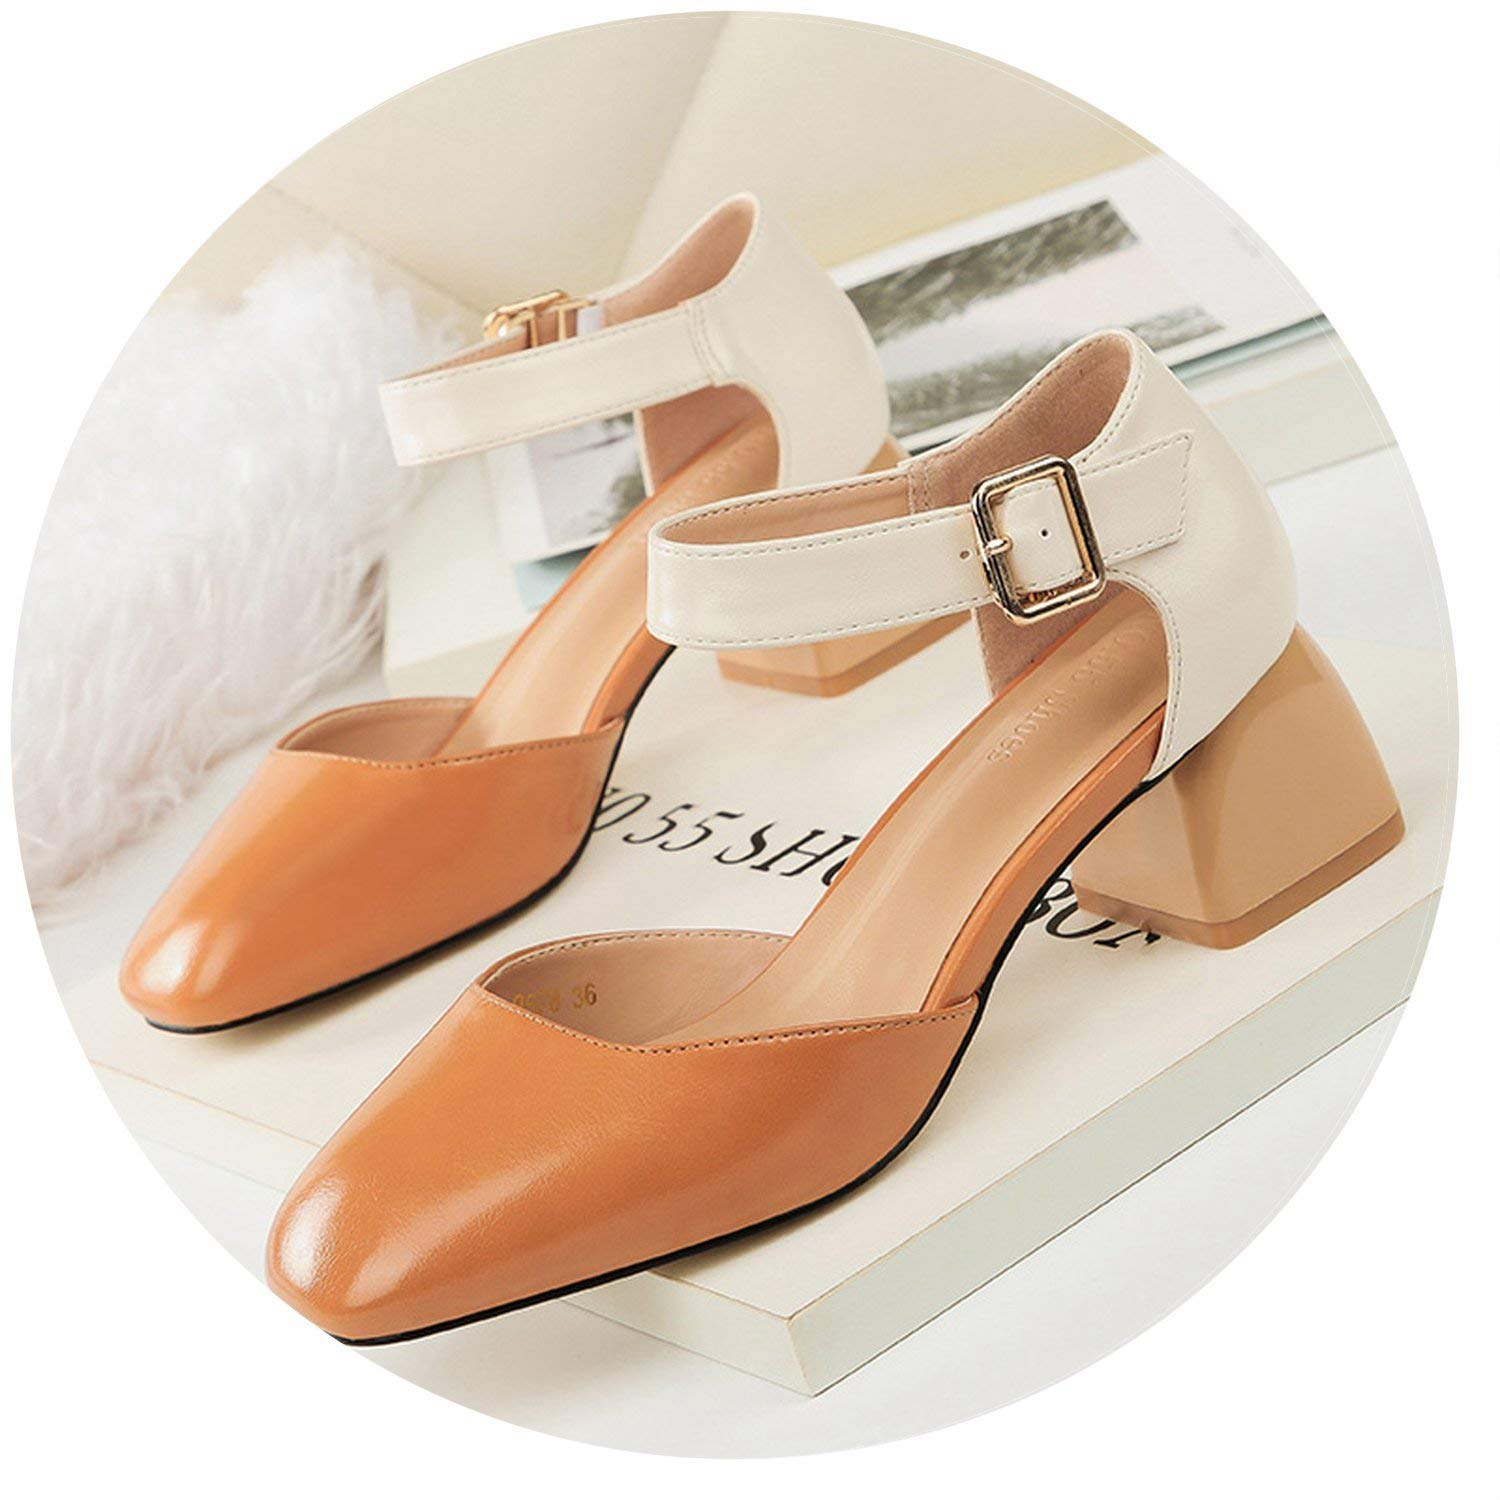 4aa15ee05ef5 Get Quotations · Shiny-Fashion-Dream-mules-shoes Woman Block High Heels  Sandals Mules Buckle